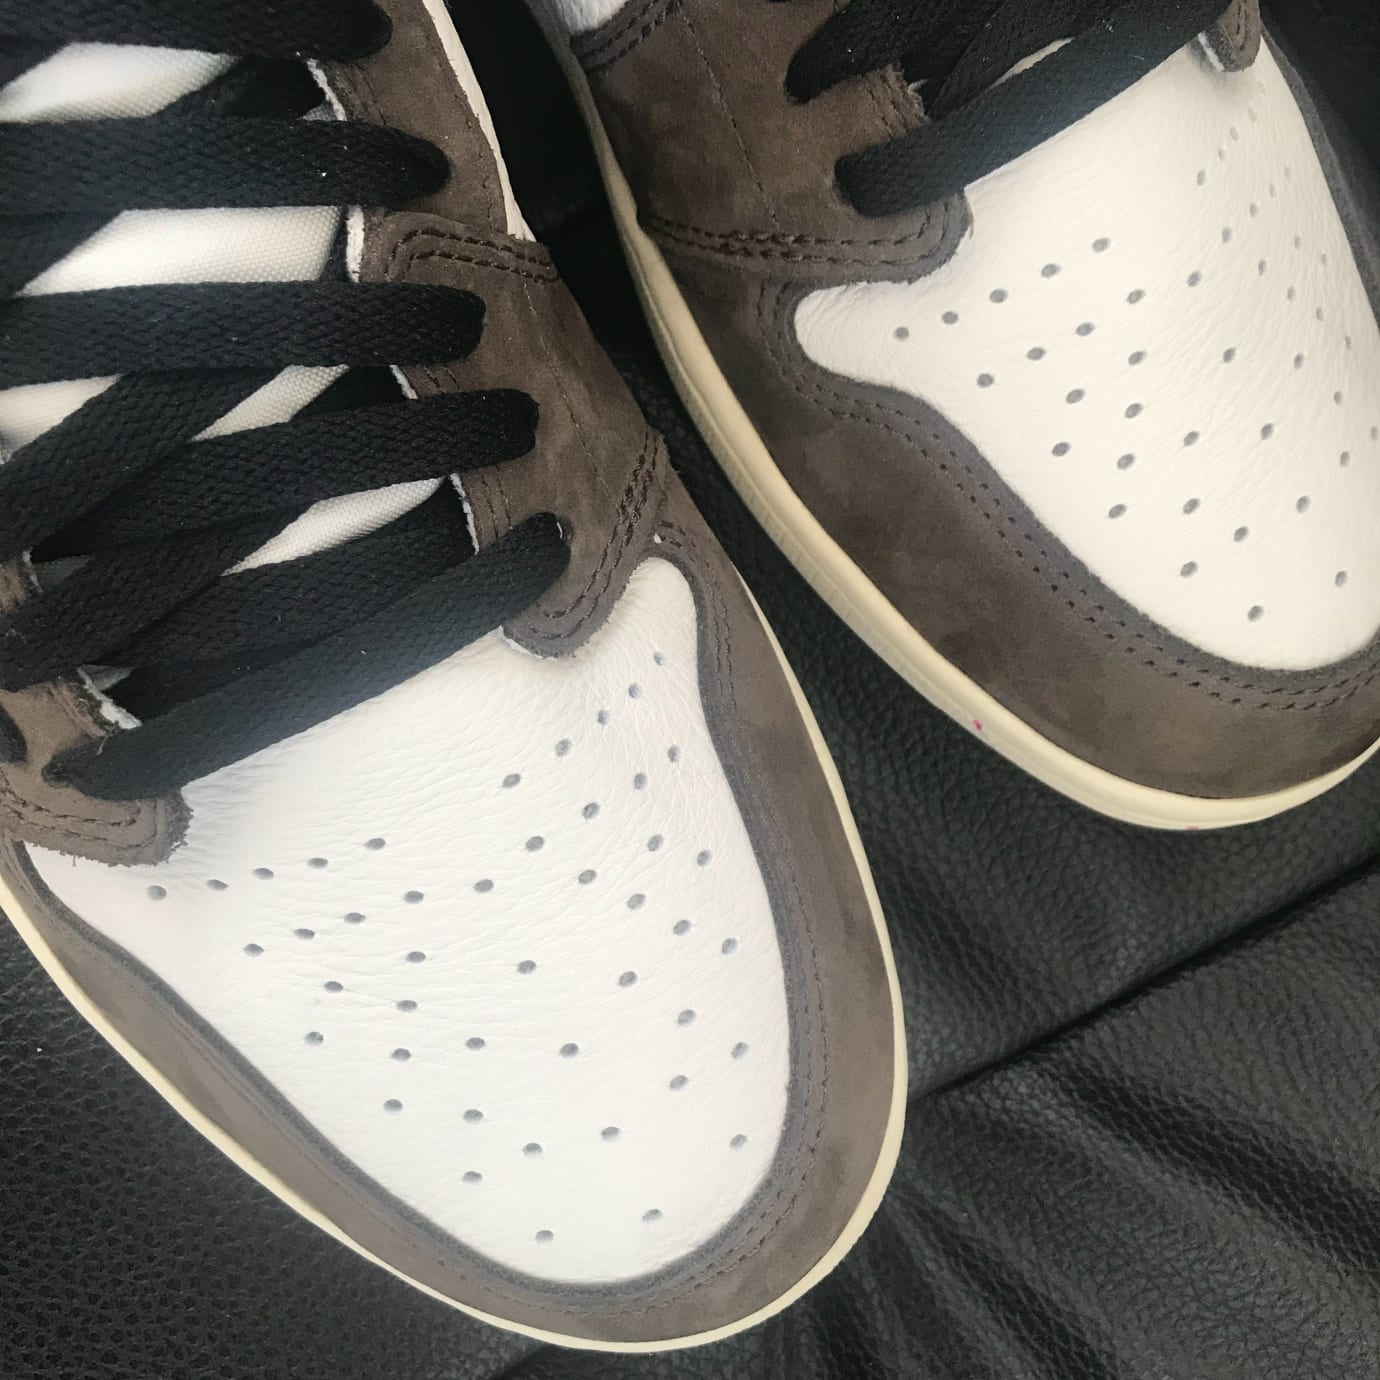 9618adb89b45 Image via Weibo.cn Travis Scott x Air Jordan 1 High OG TS SP CD4487-100  (Toe Box